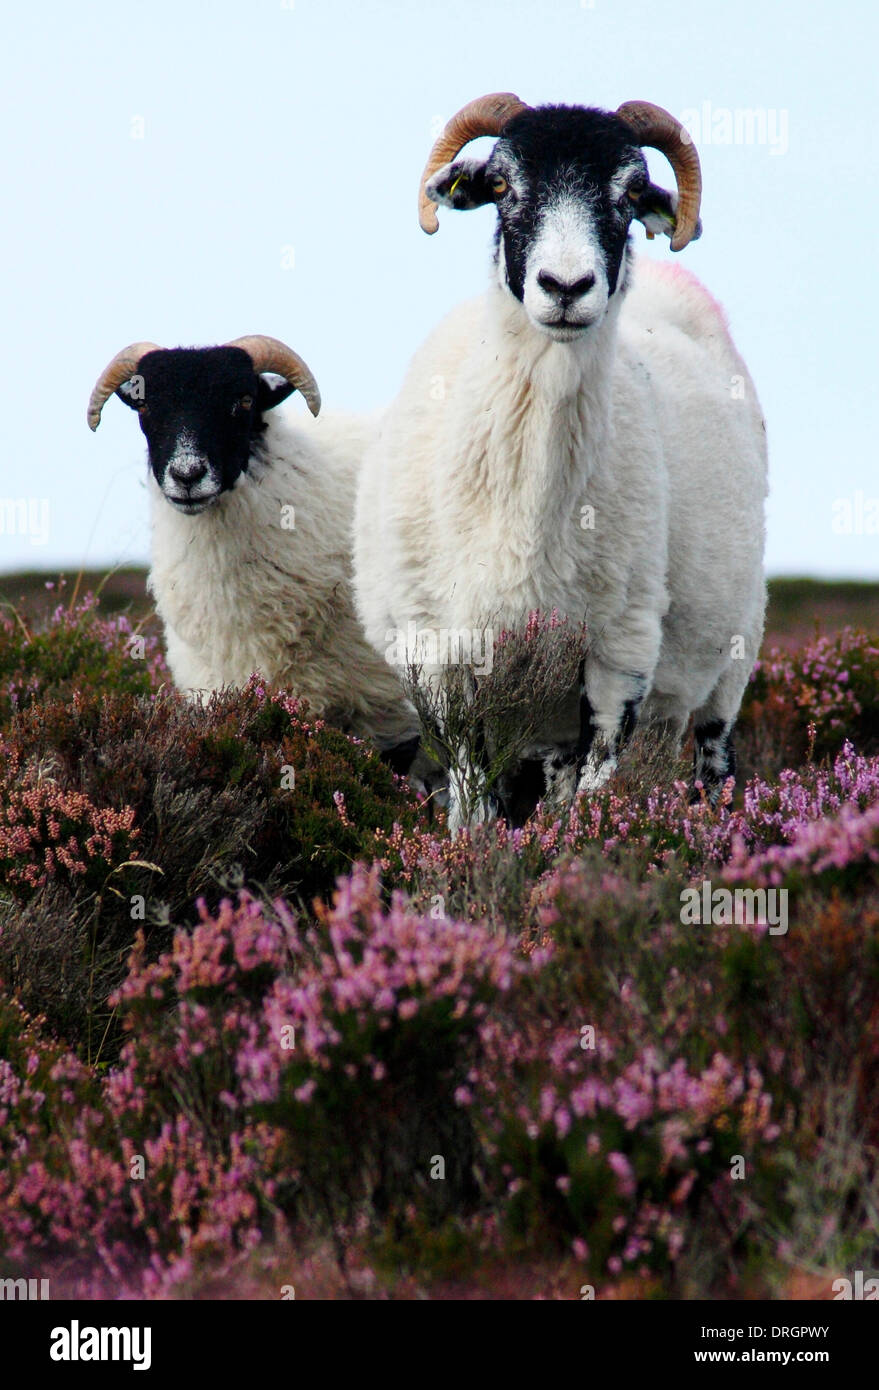 Black Faced Sheep On Flowering Heather Ling On Moorland In